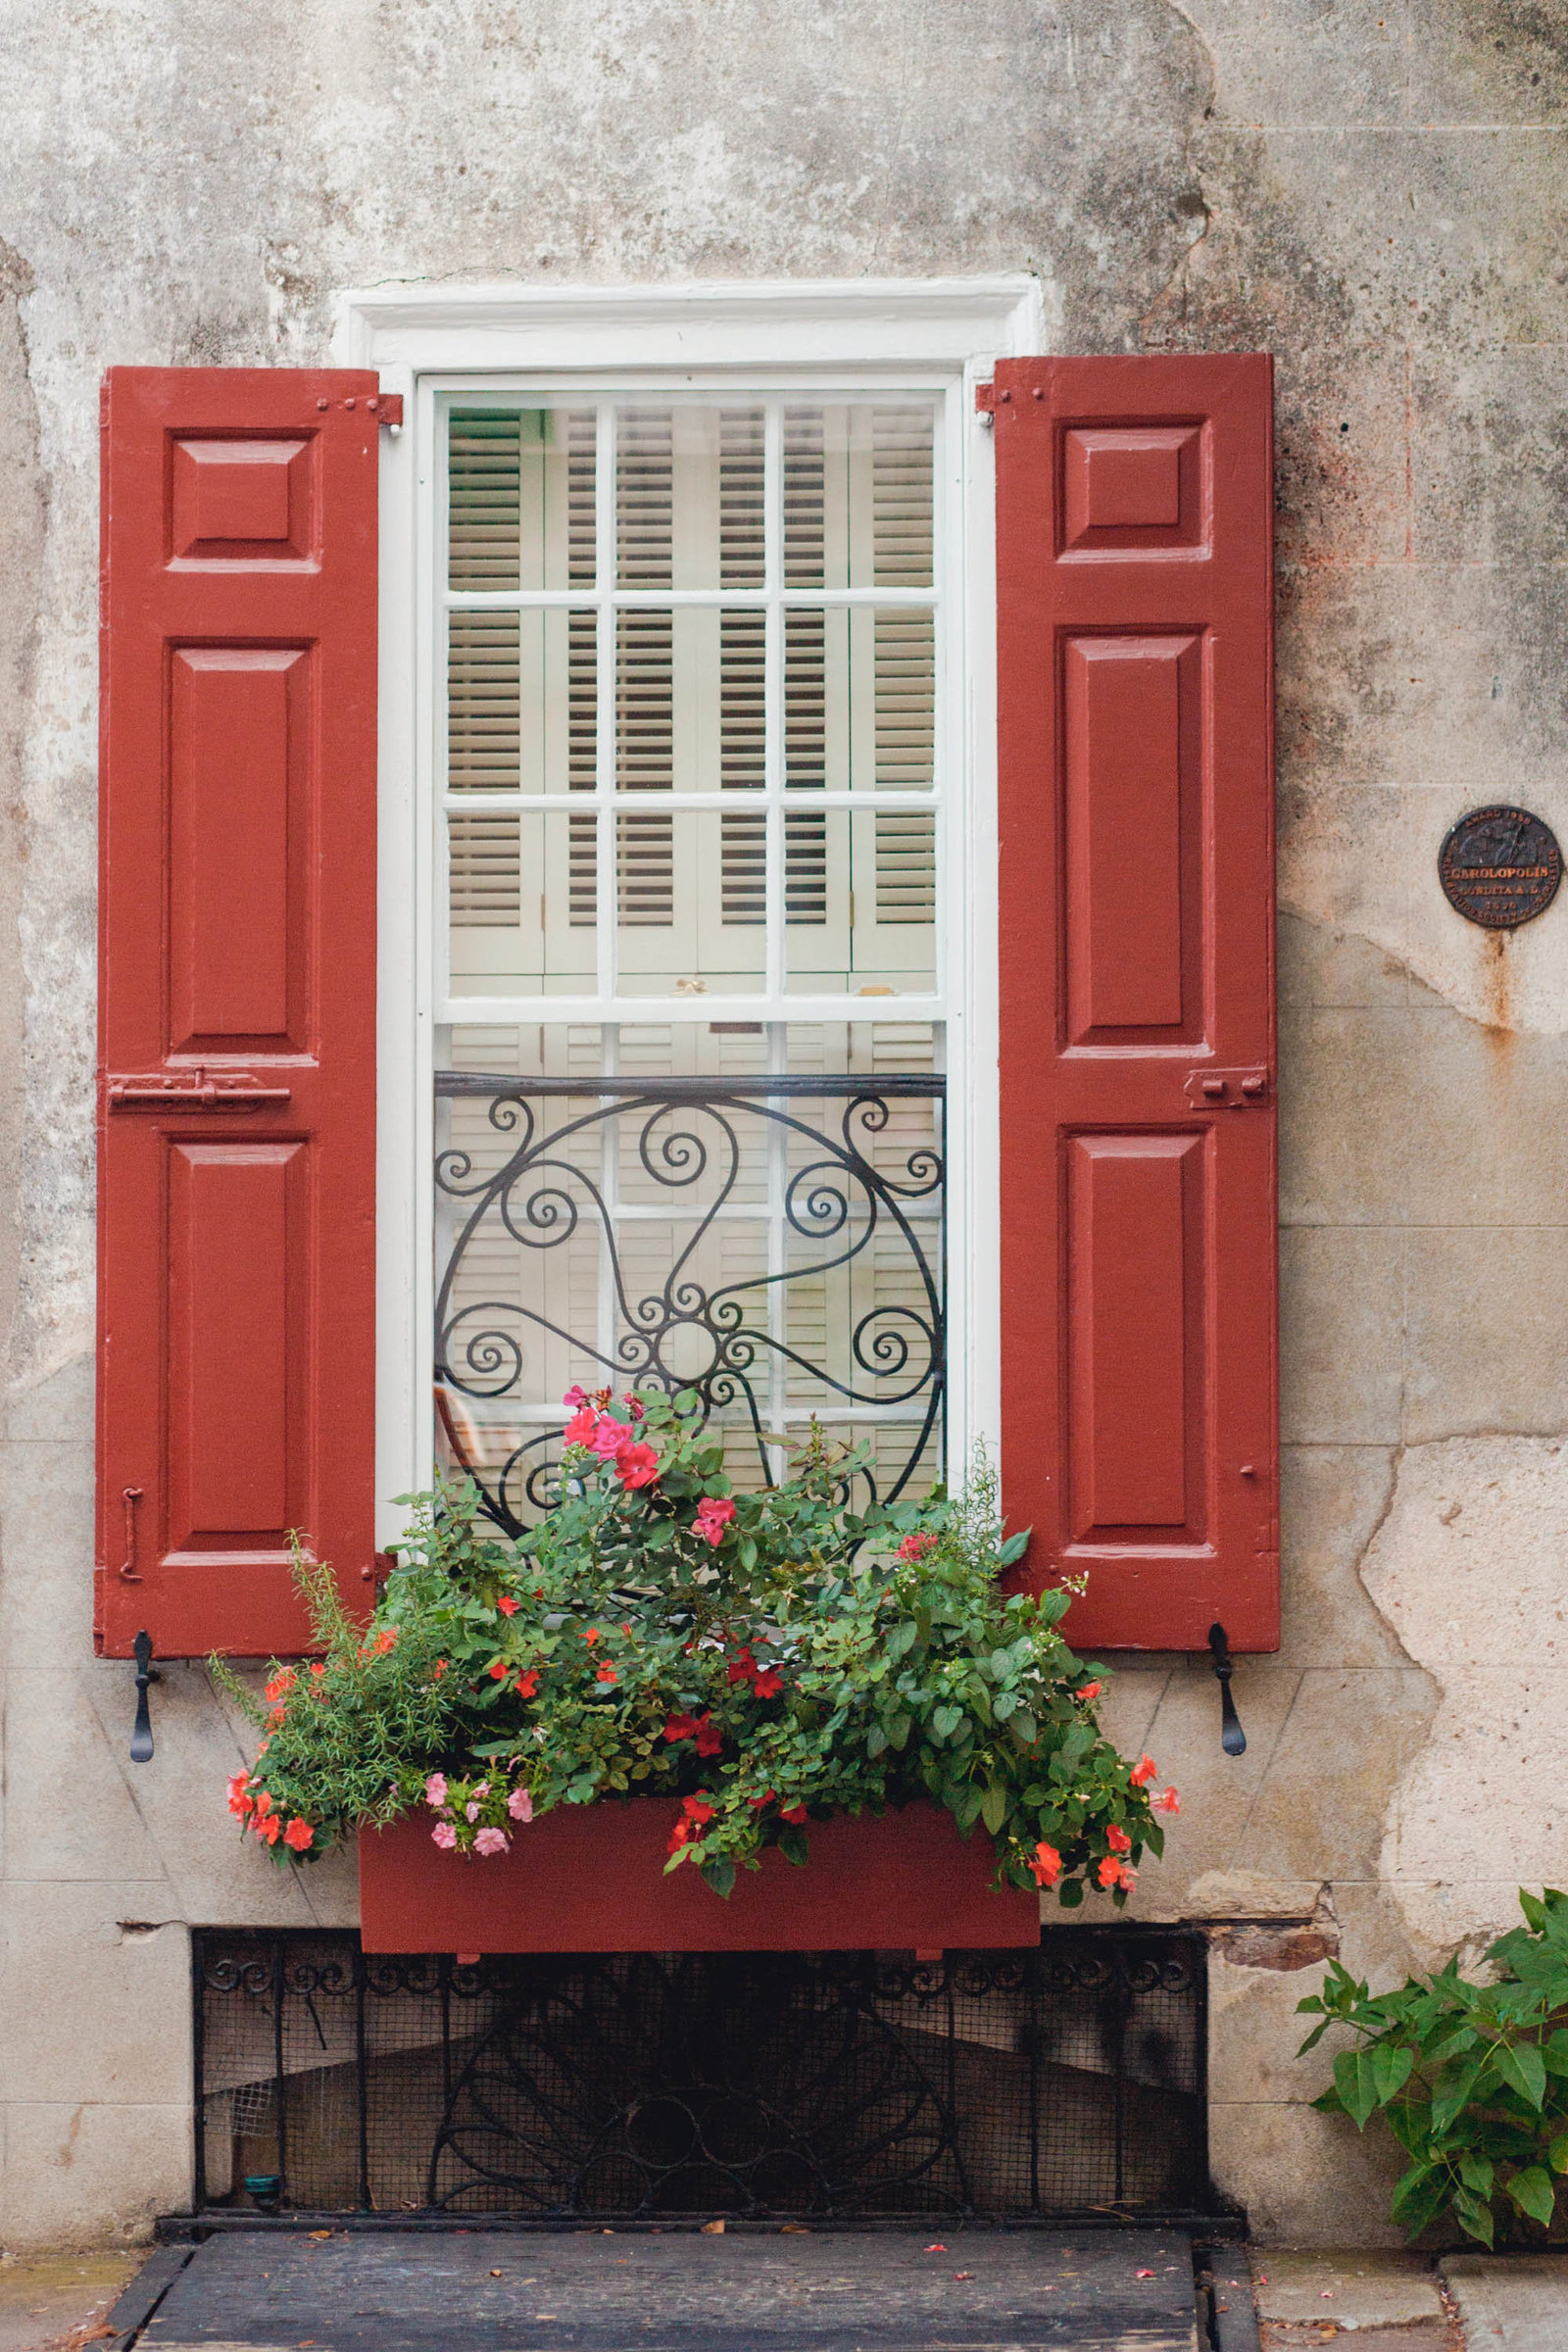 french-quarter-window-flower-charleston-sc-kate-timbers-photography-1016